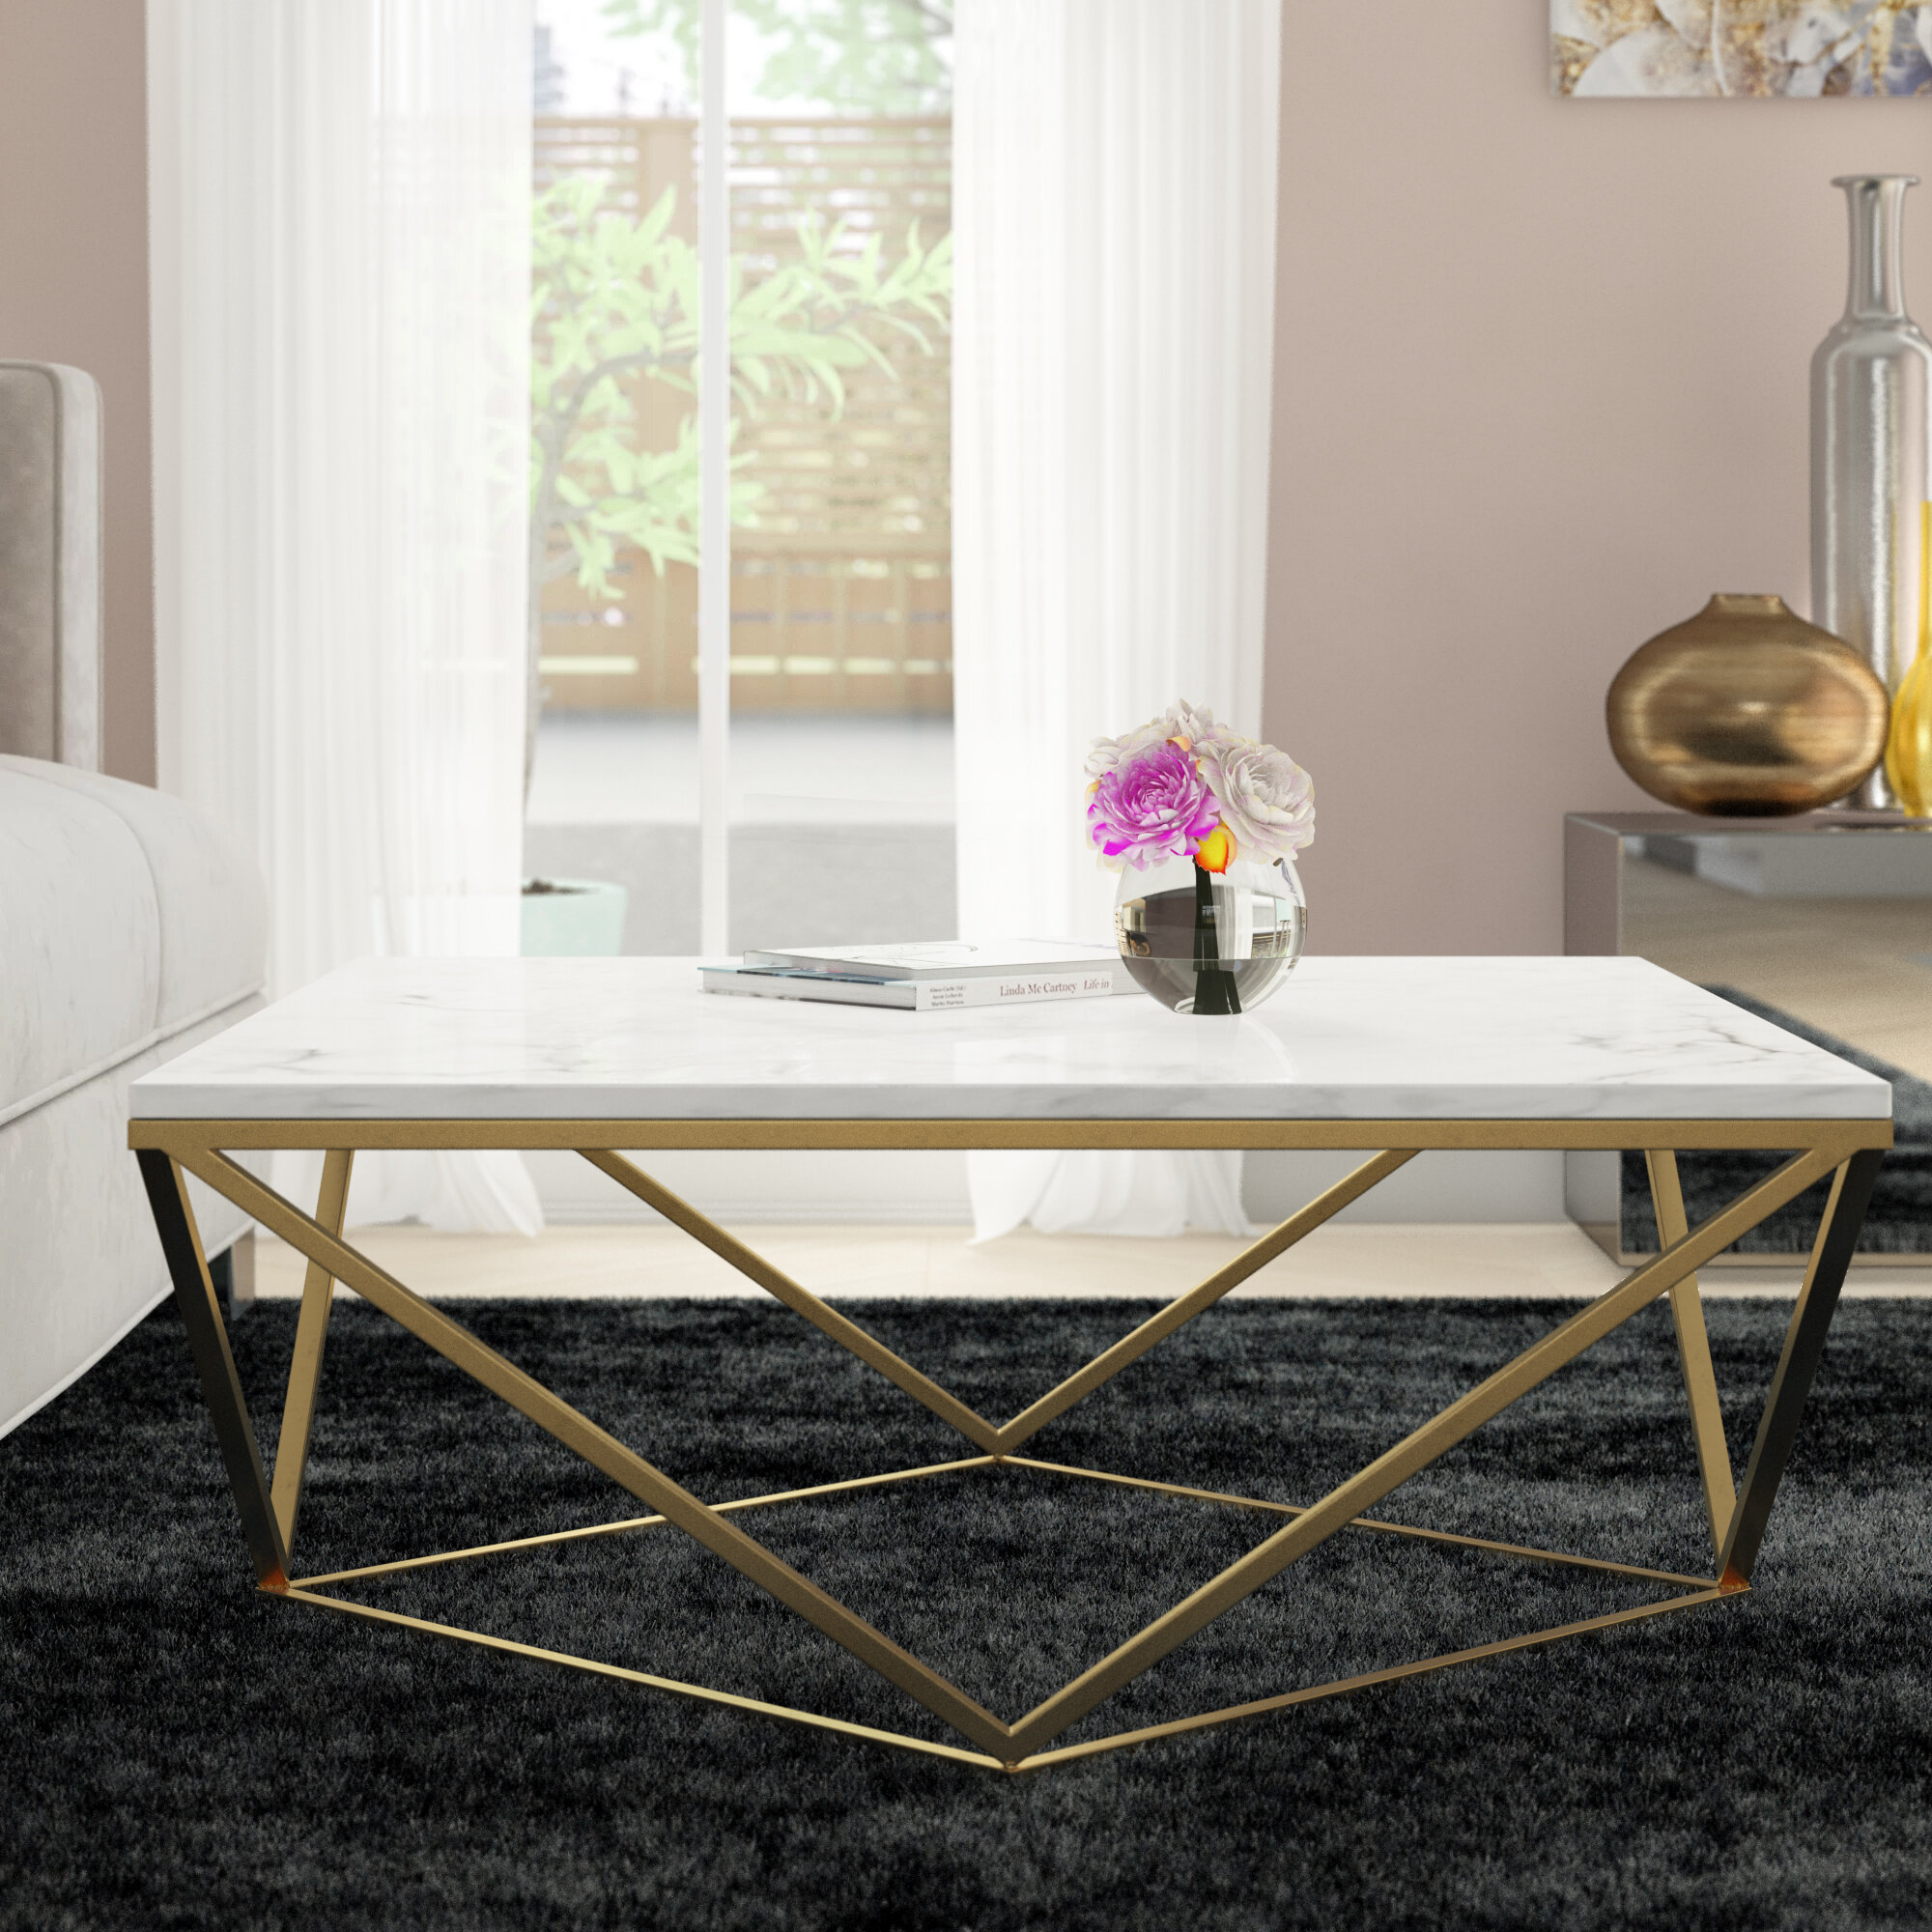 Gold Square Coffee Tables You'll Love In 2019 | Wayfair Pertaining To Robblee 4 Light Geometric Pendants (View 21 of 30)